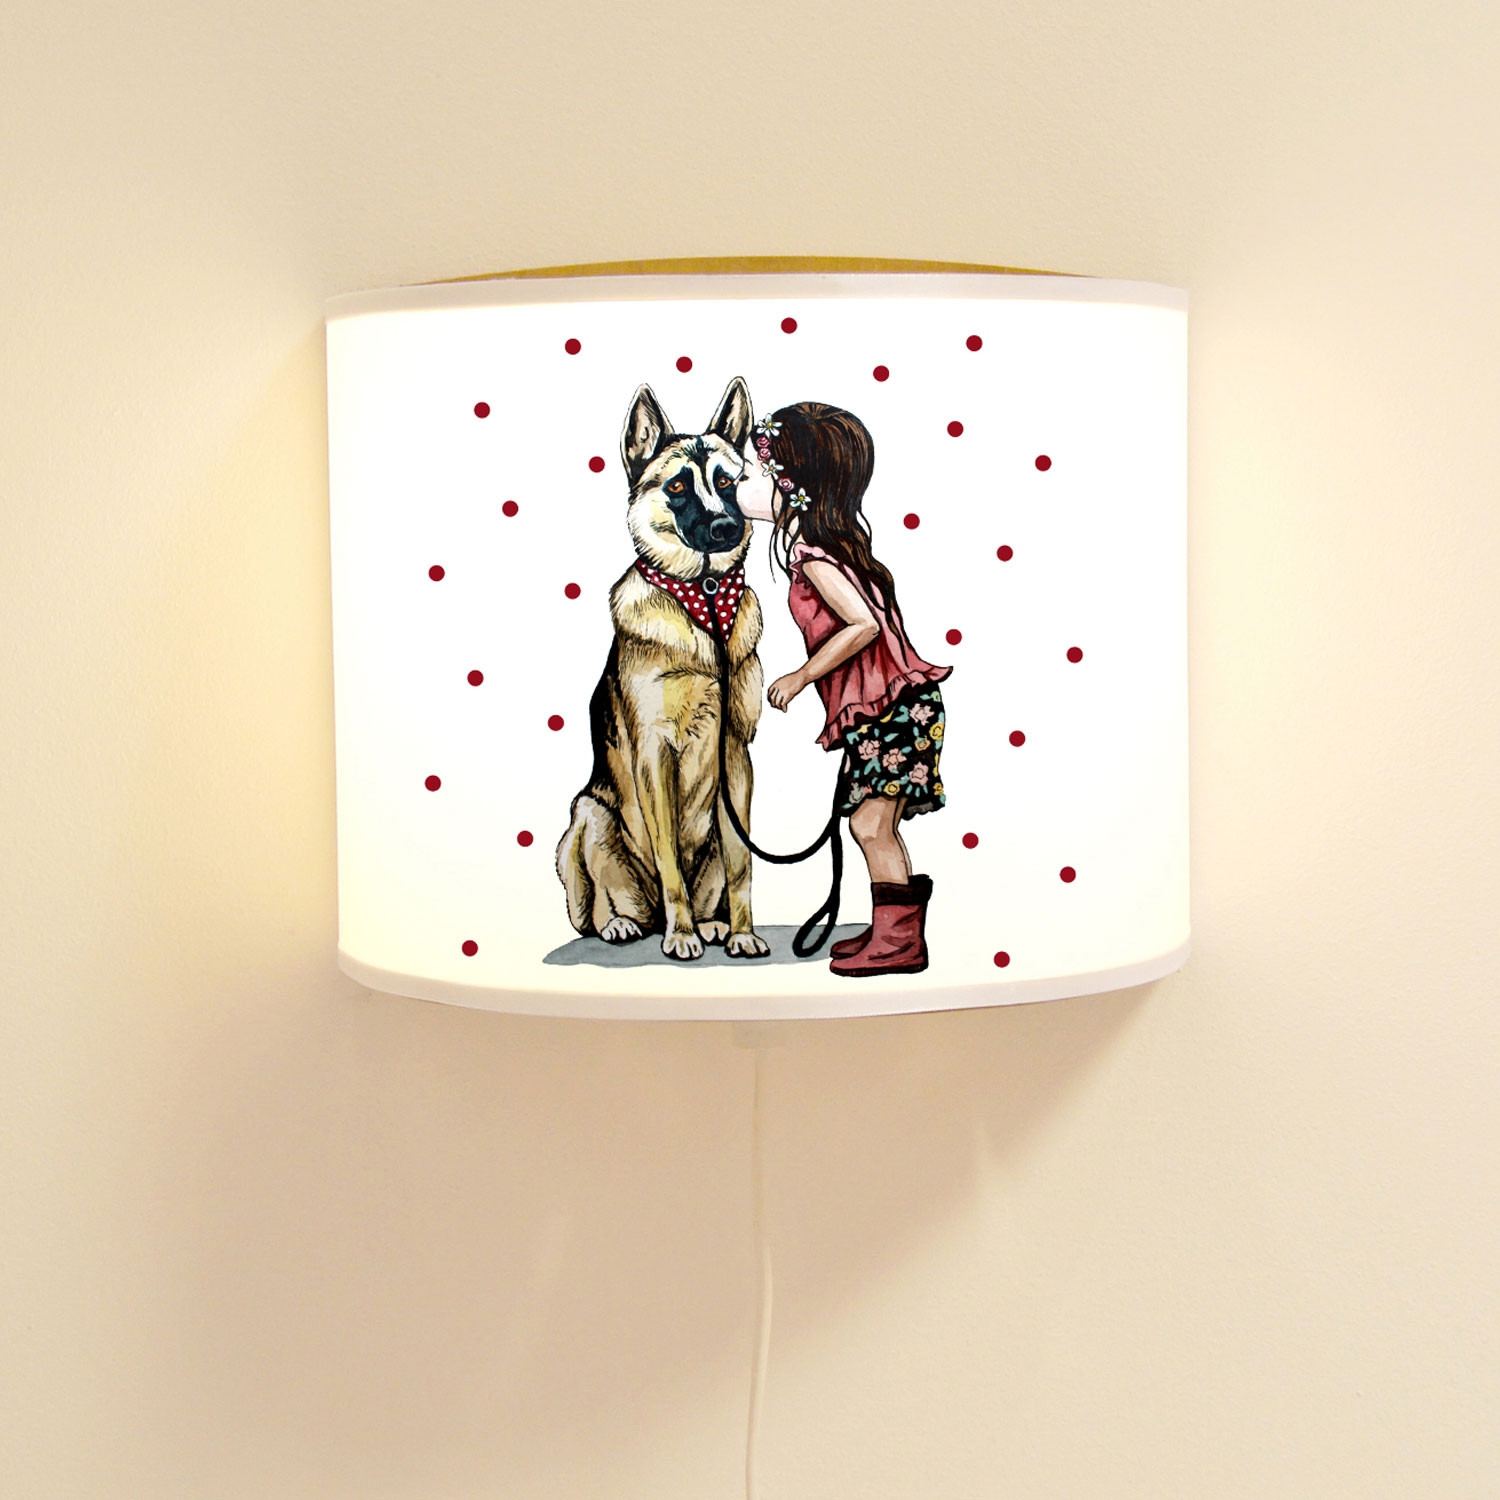 leseschlummerlampe lampe mit hund sch ferhund m dchen hundelampe mit punkte ls78 wandtattoos. Black Bedroom Furniture Sets. Home Design Ideas